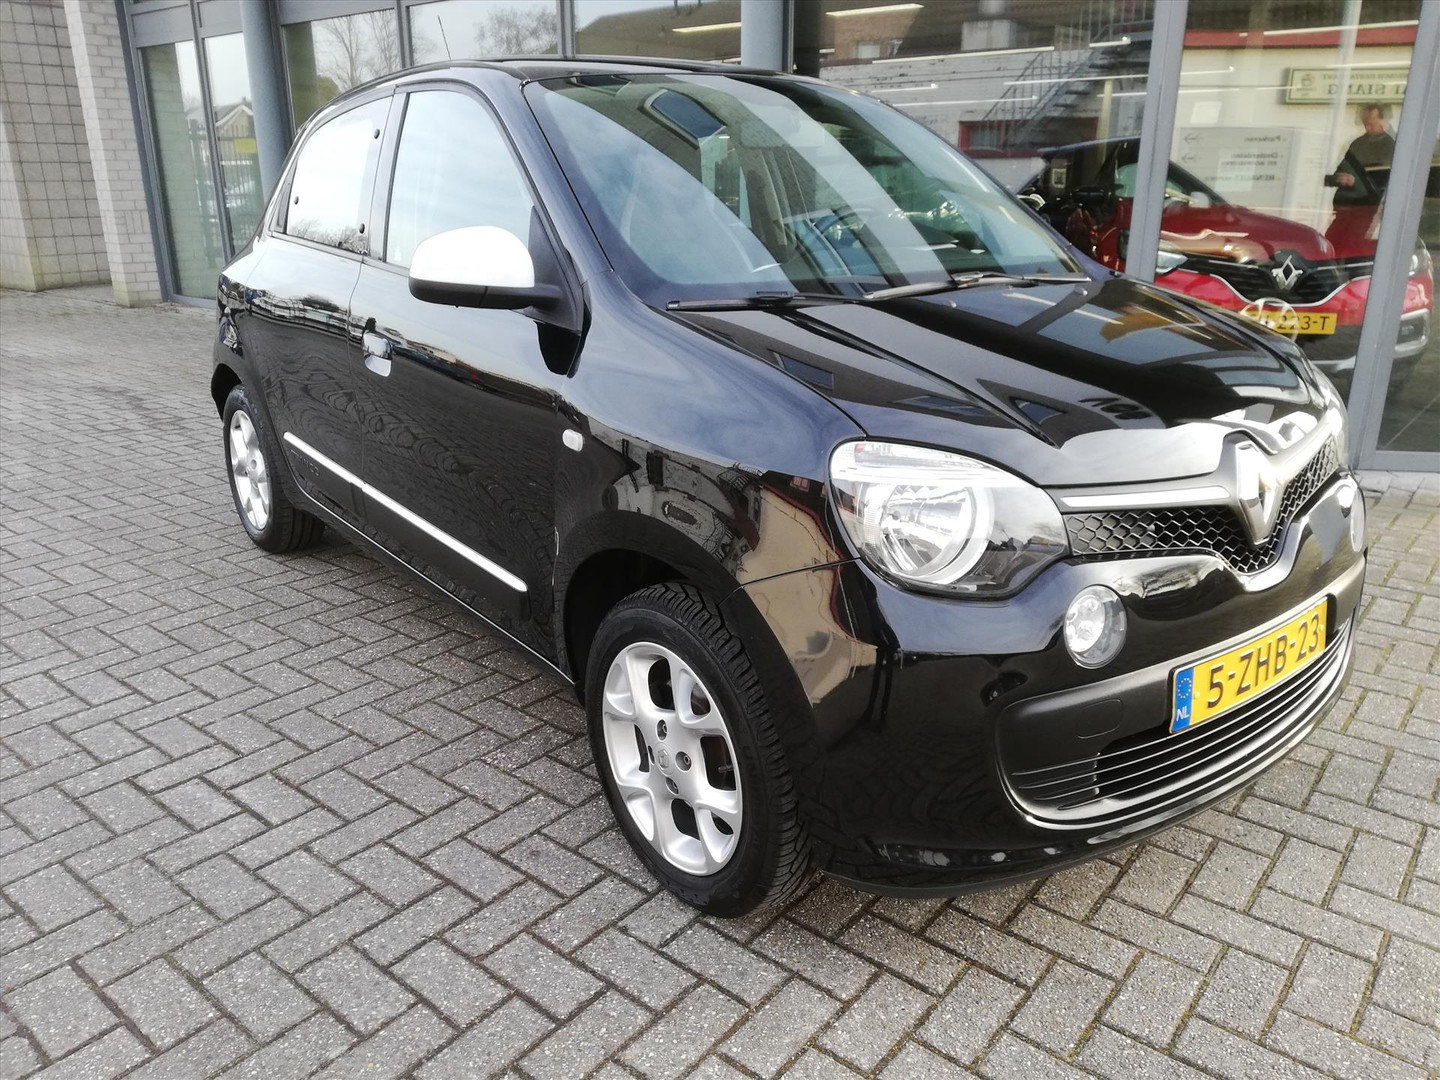 Renault Twingo 0.9 tce 90pk expression